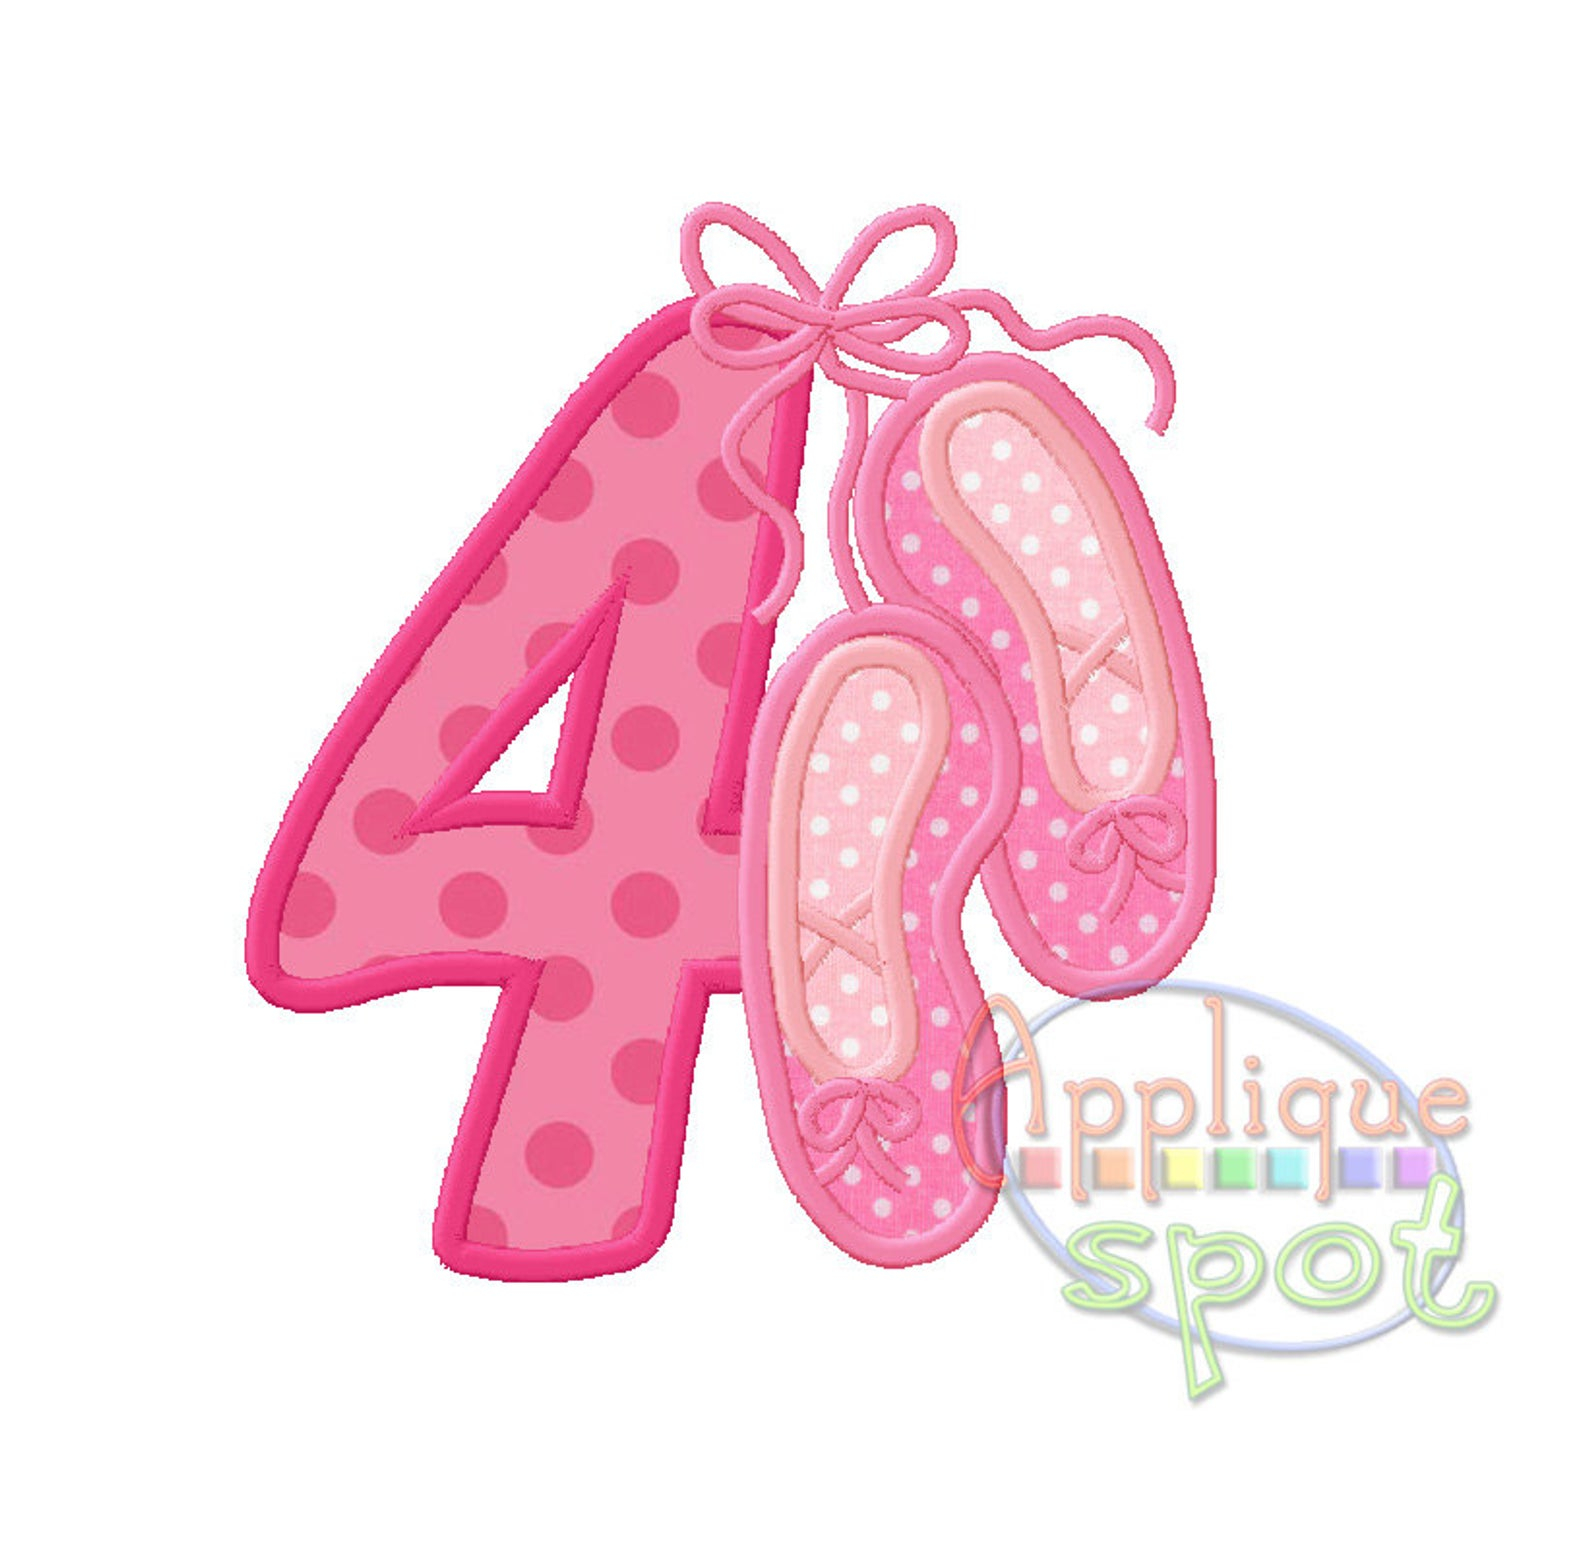 Patterns For Embroidery Machine Ballet Fourth 4th Birthday Ba Girl 4 4x4 5x7 6x10 Applique